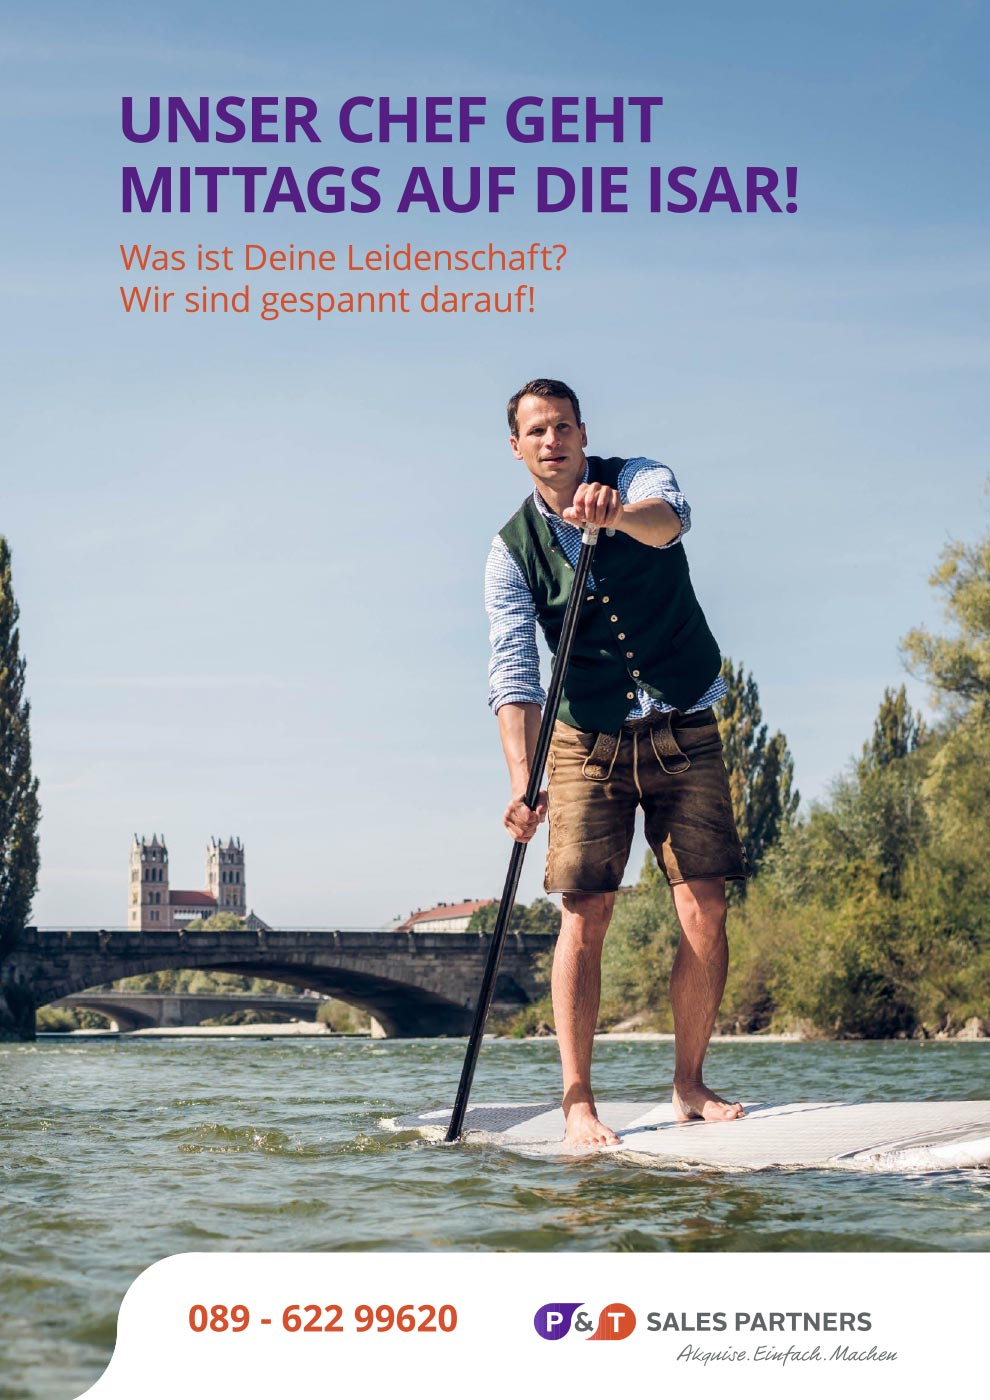 P&T_Sales_recruitment_Munich_river_SUP_photographer_Christian_Brecheis